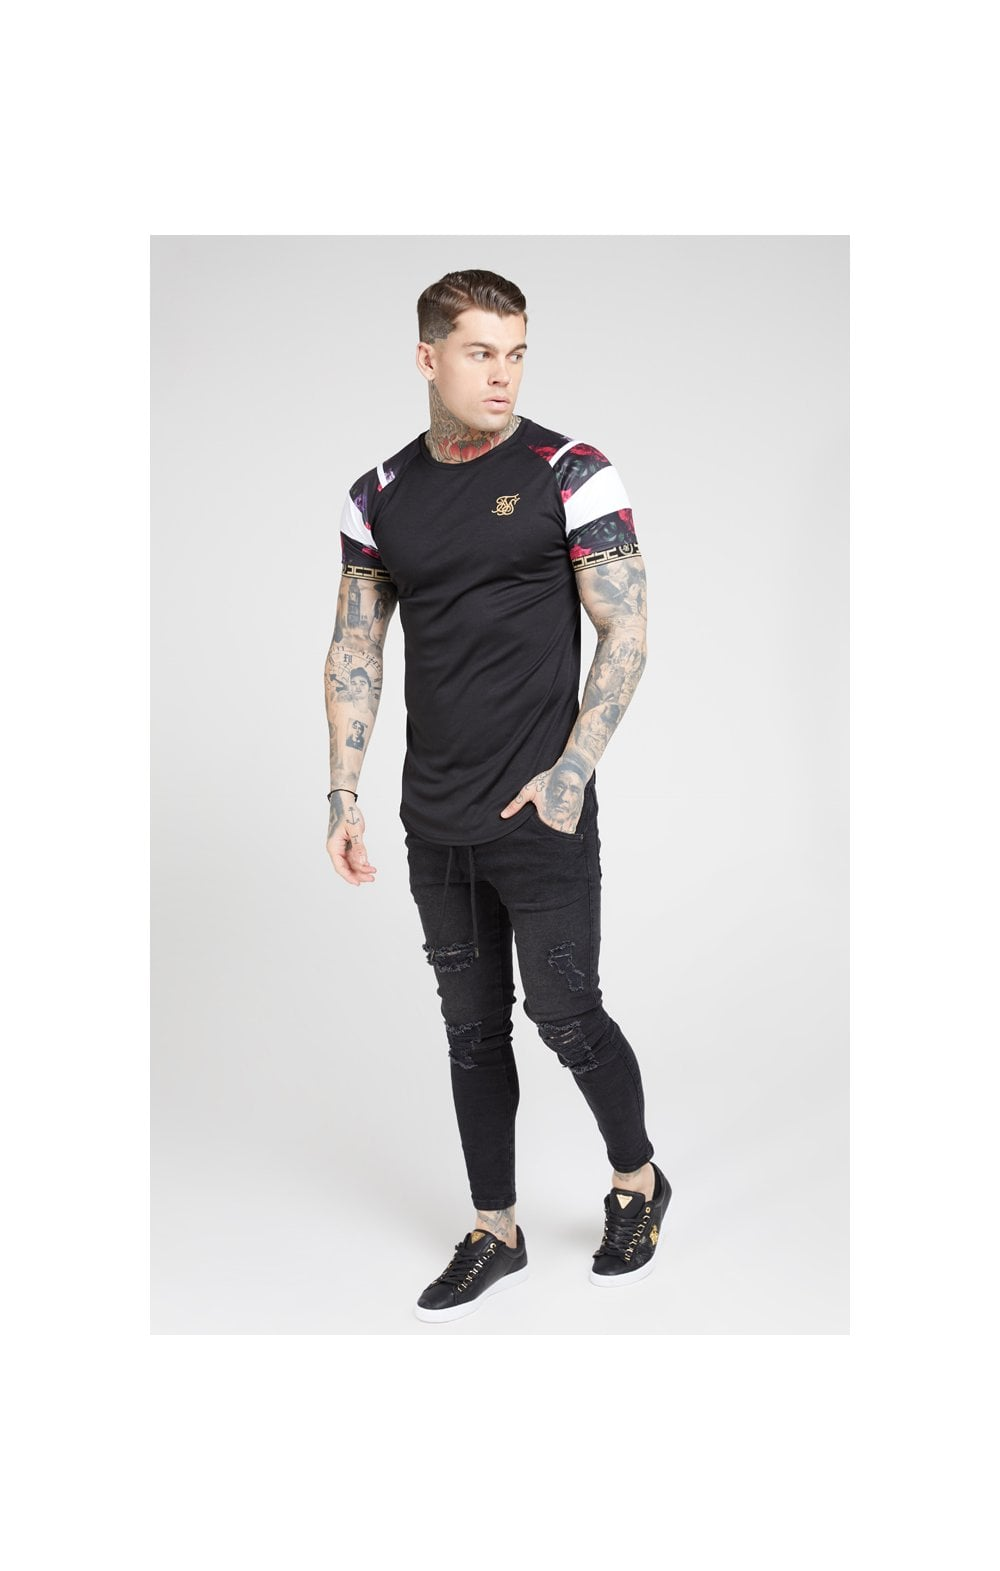 Load image into Gallery viewer, SikSilk S/S Raglan Sprint Tape Tee - Black & Oil Paint (2)